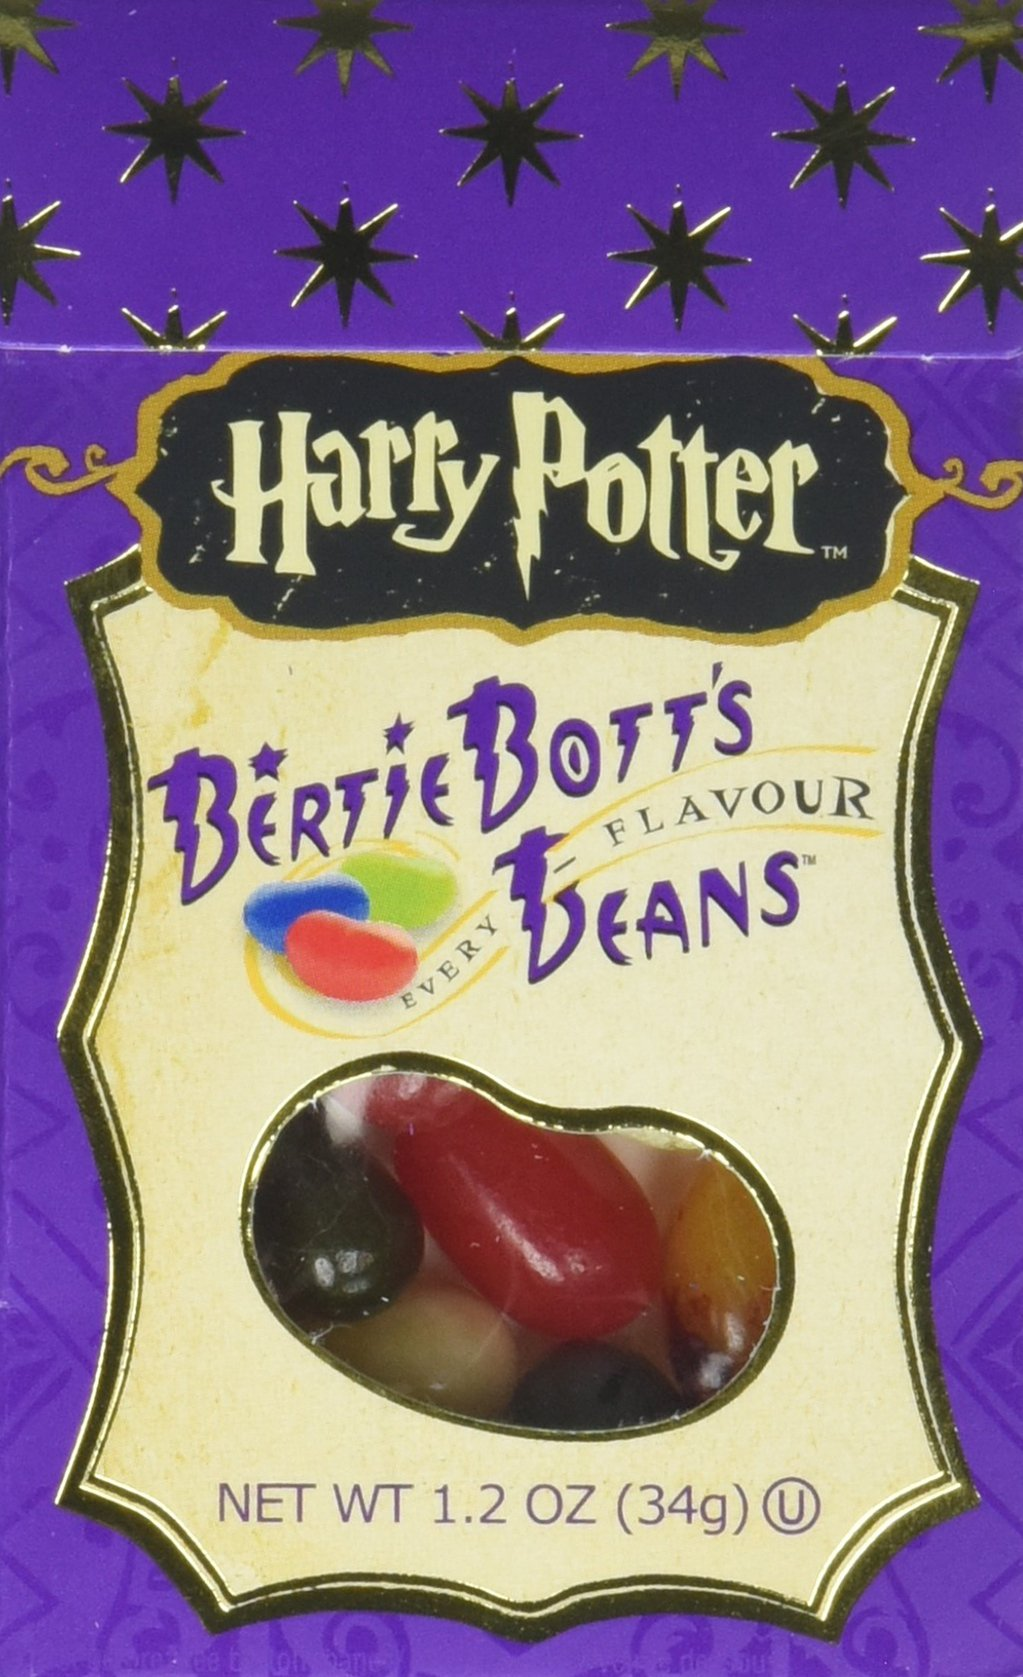 Harry Potter Bertie Botts Every Flavor Beans, 1.2oz boxes ~ 6 Pack